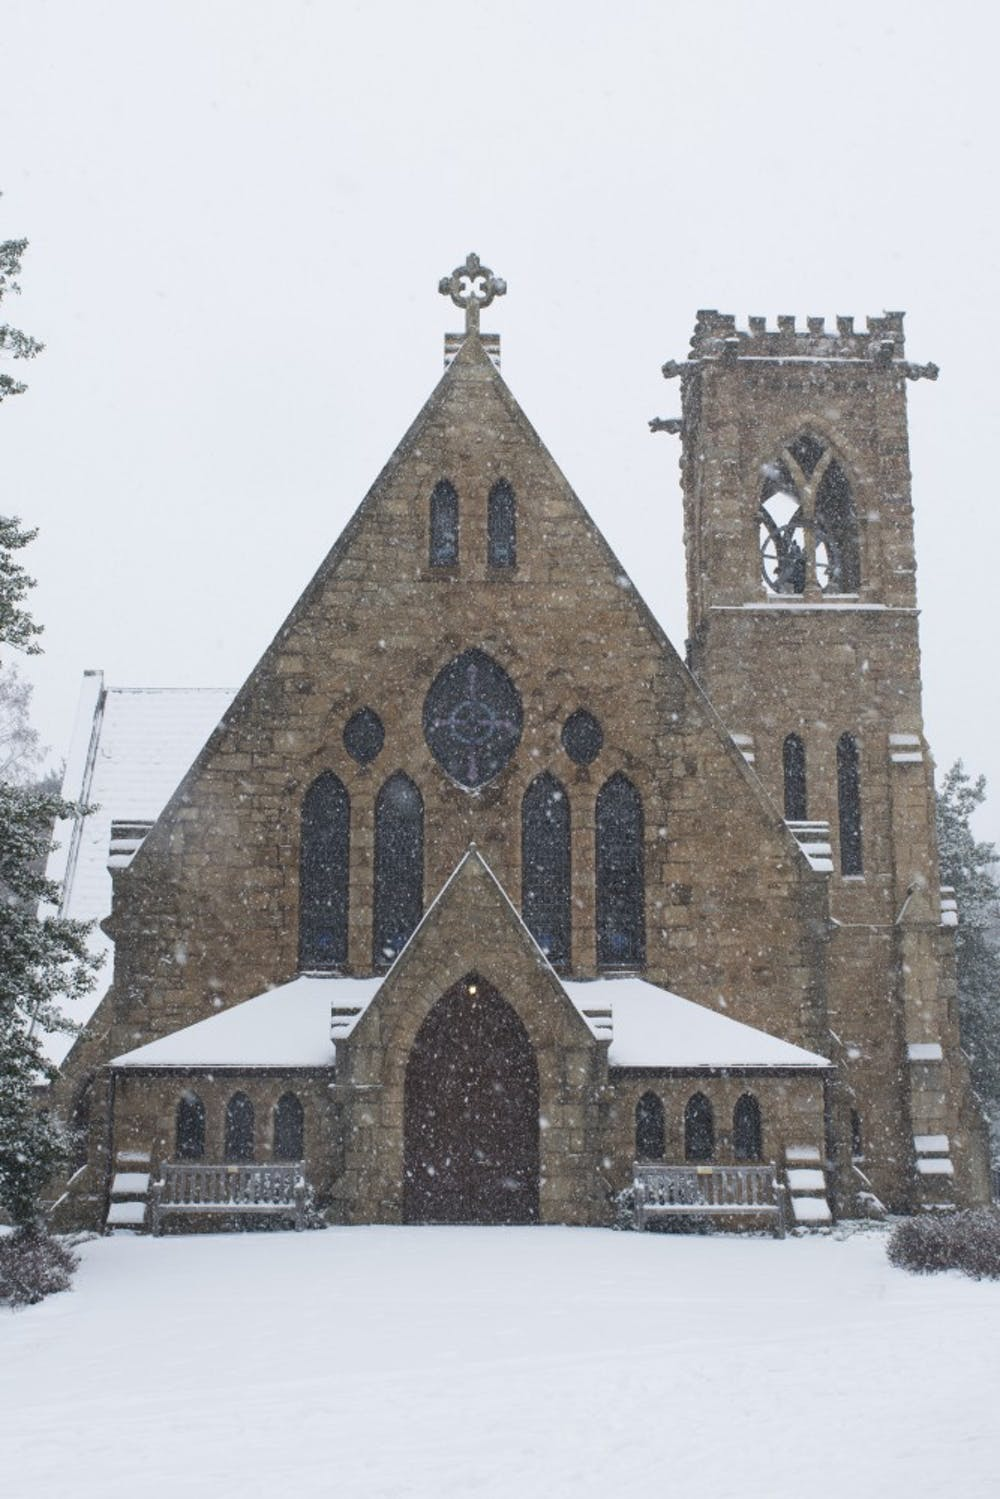 <p>In 2015, 63 weddings were held in the Chapel &mdash; nearly half of the number held there in 2008.</p>